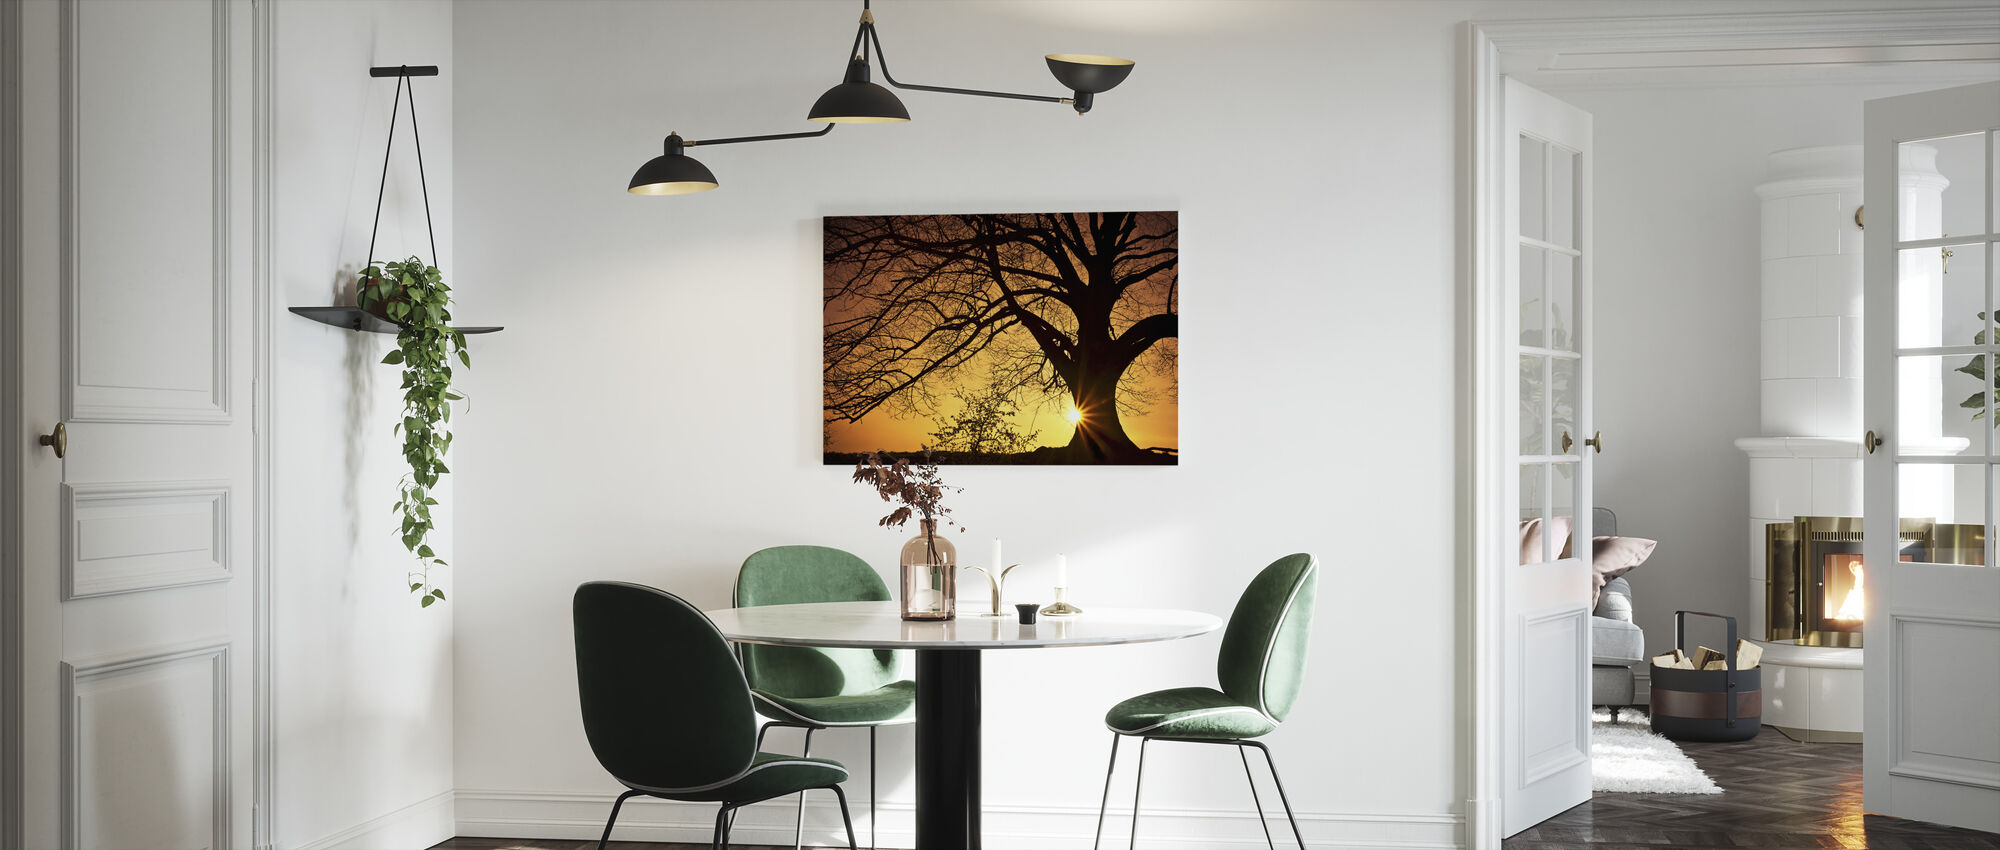 Silhouette of a Willow Tree in Sunset - Canvas print - Kitchen